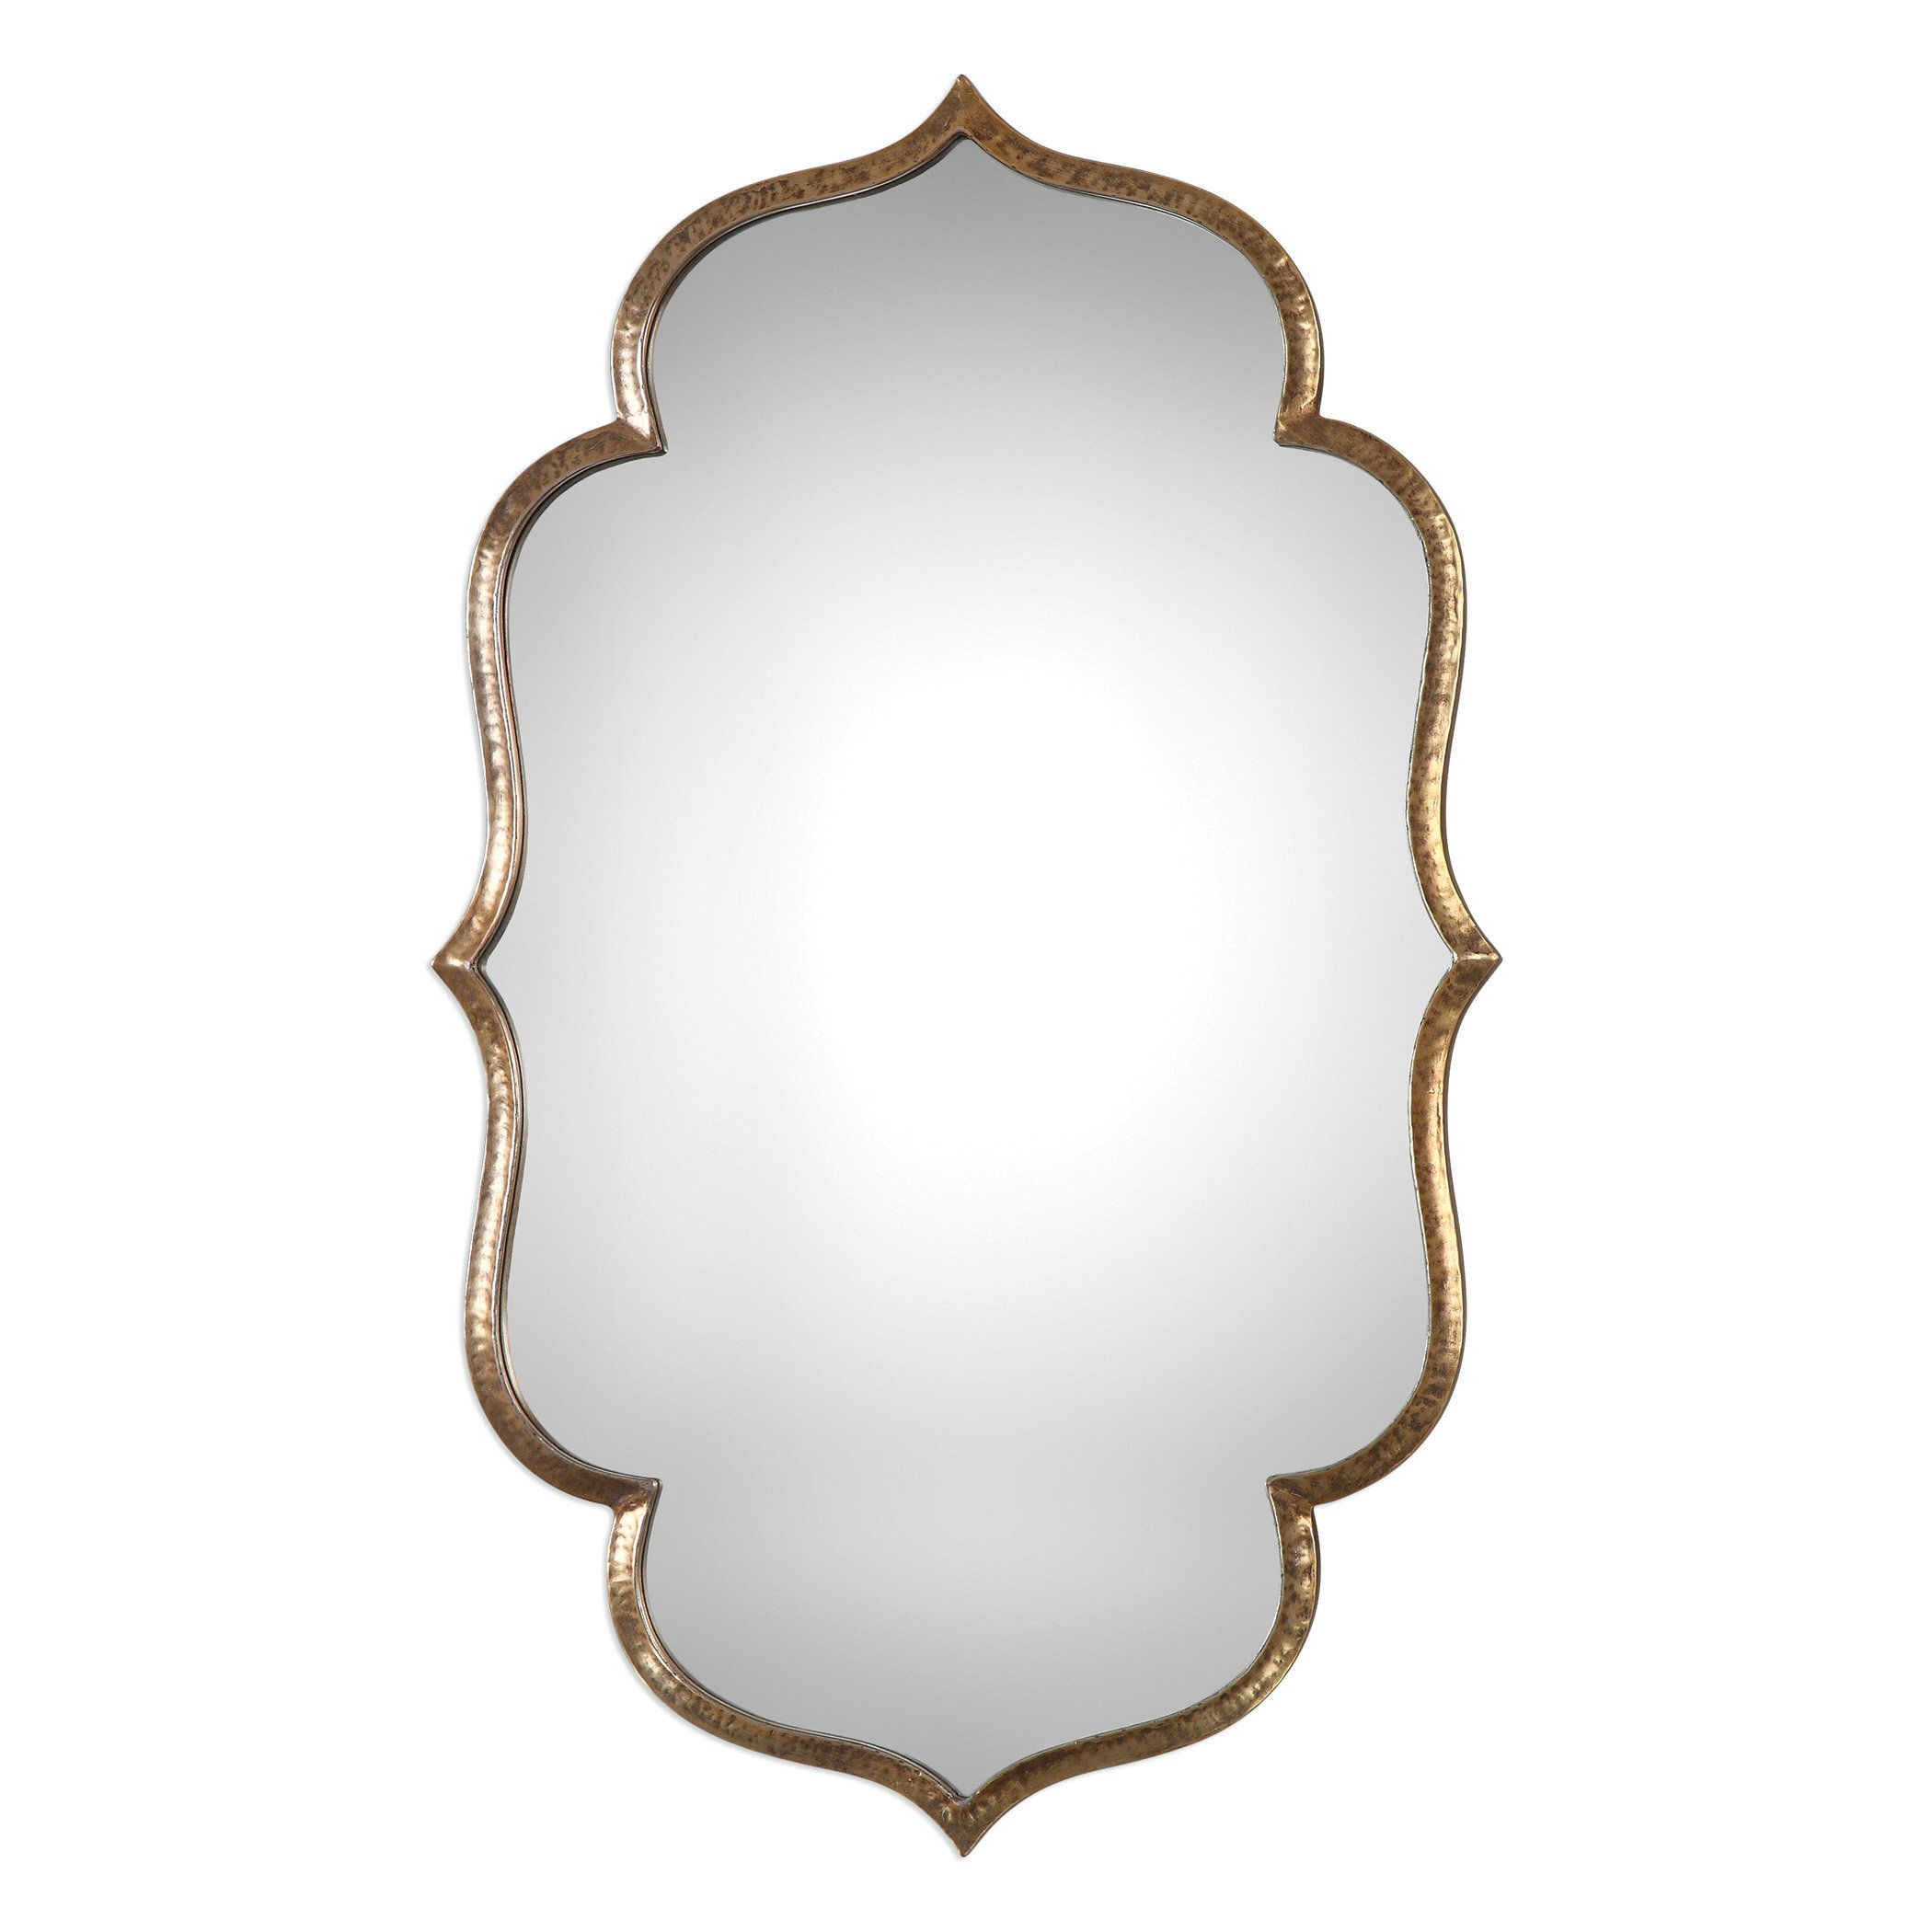 Lightly Antiqued Metallic Gold Wall Mirror | For The Home For Broadmeadow Glam Accent Wall Mirrors (View 13 of 20)